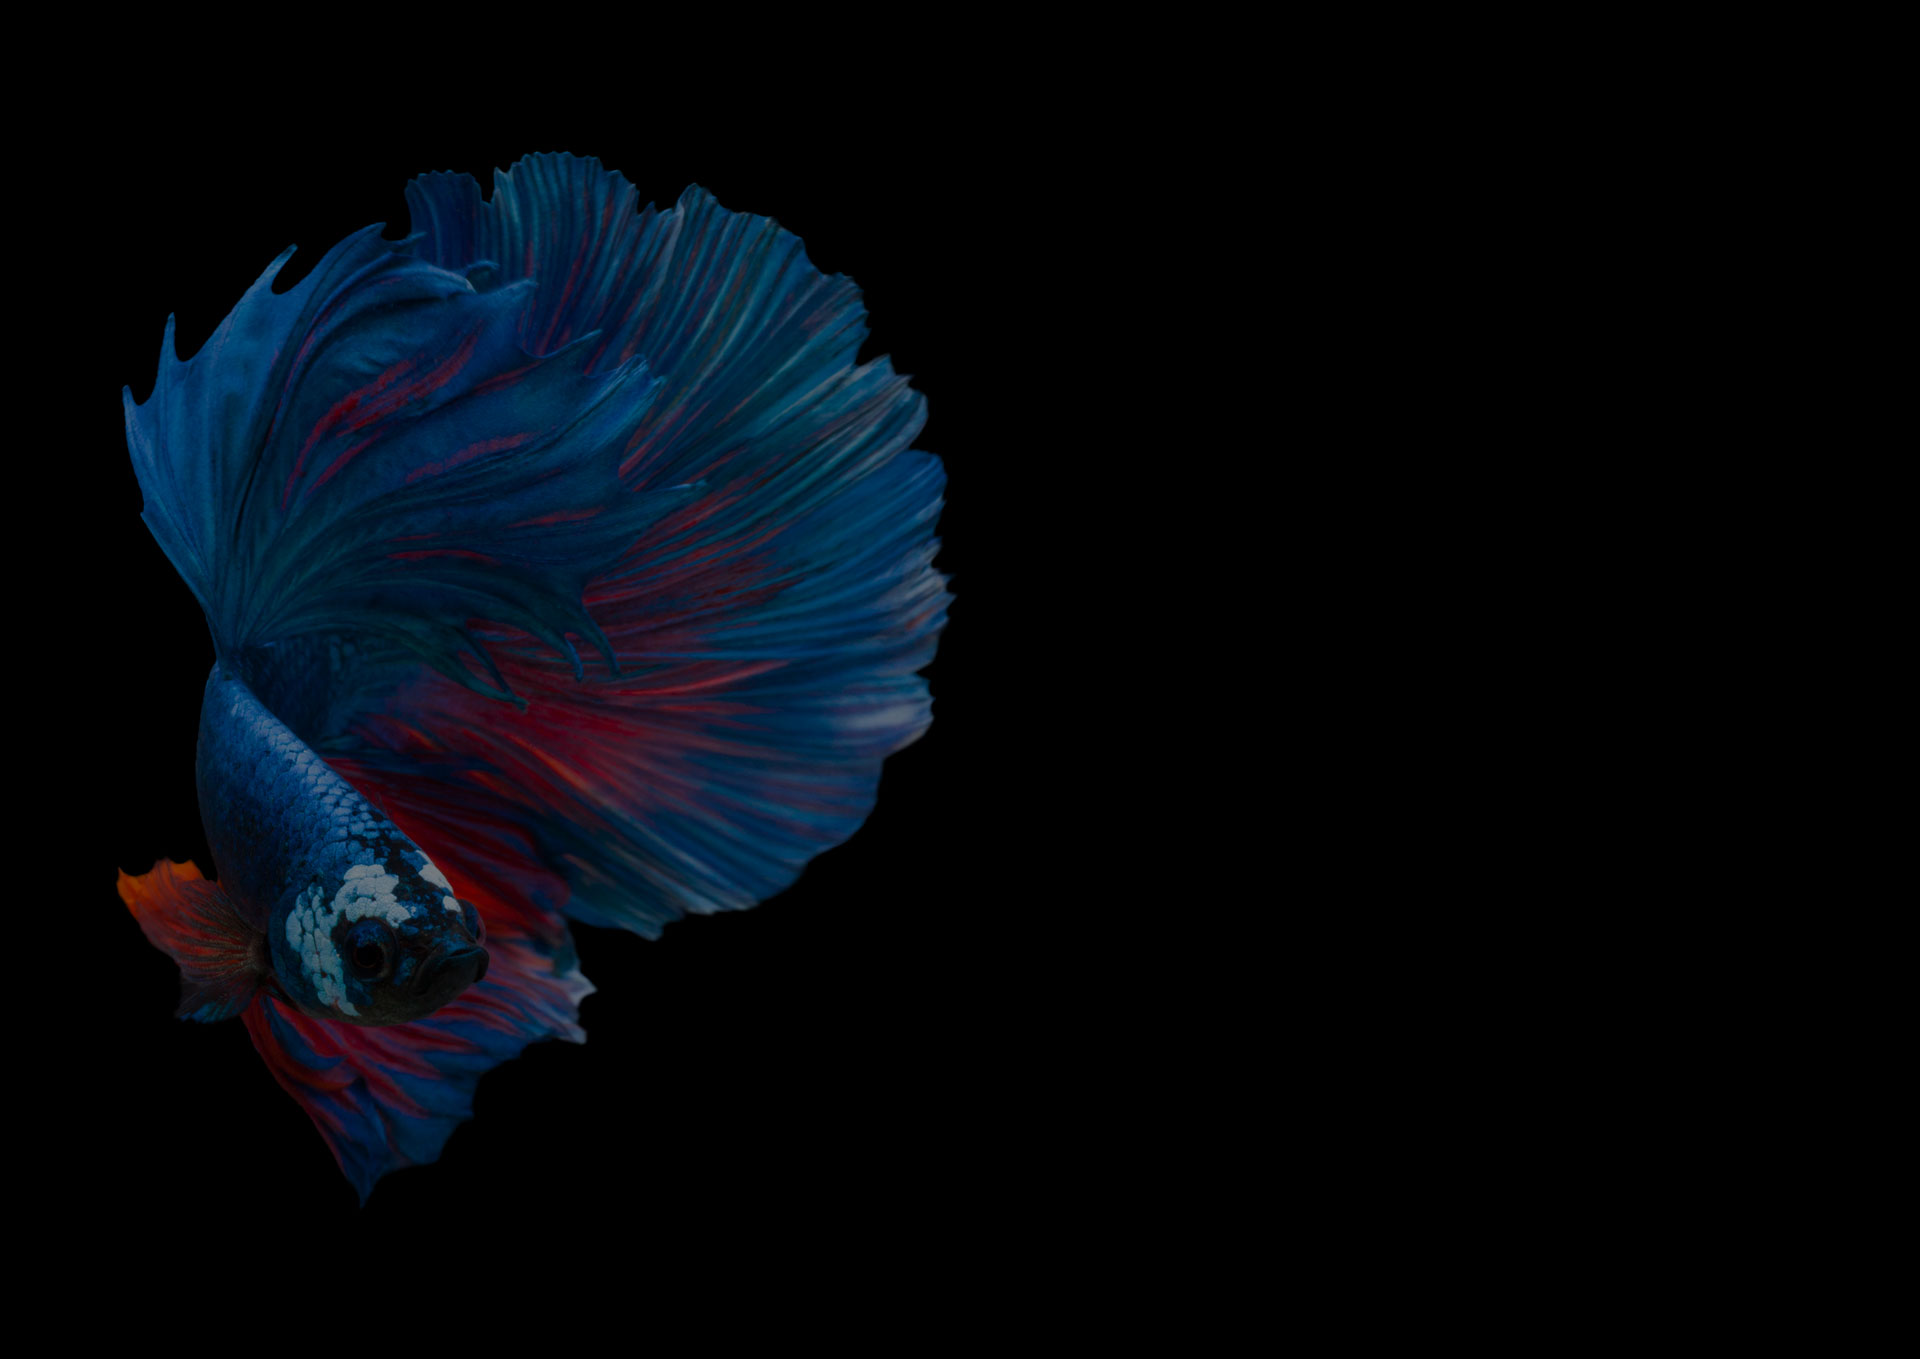 Multi color Siamese fighting fish(Rosetail),Blue fighting fish,Betta splendens,on black background